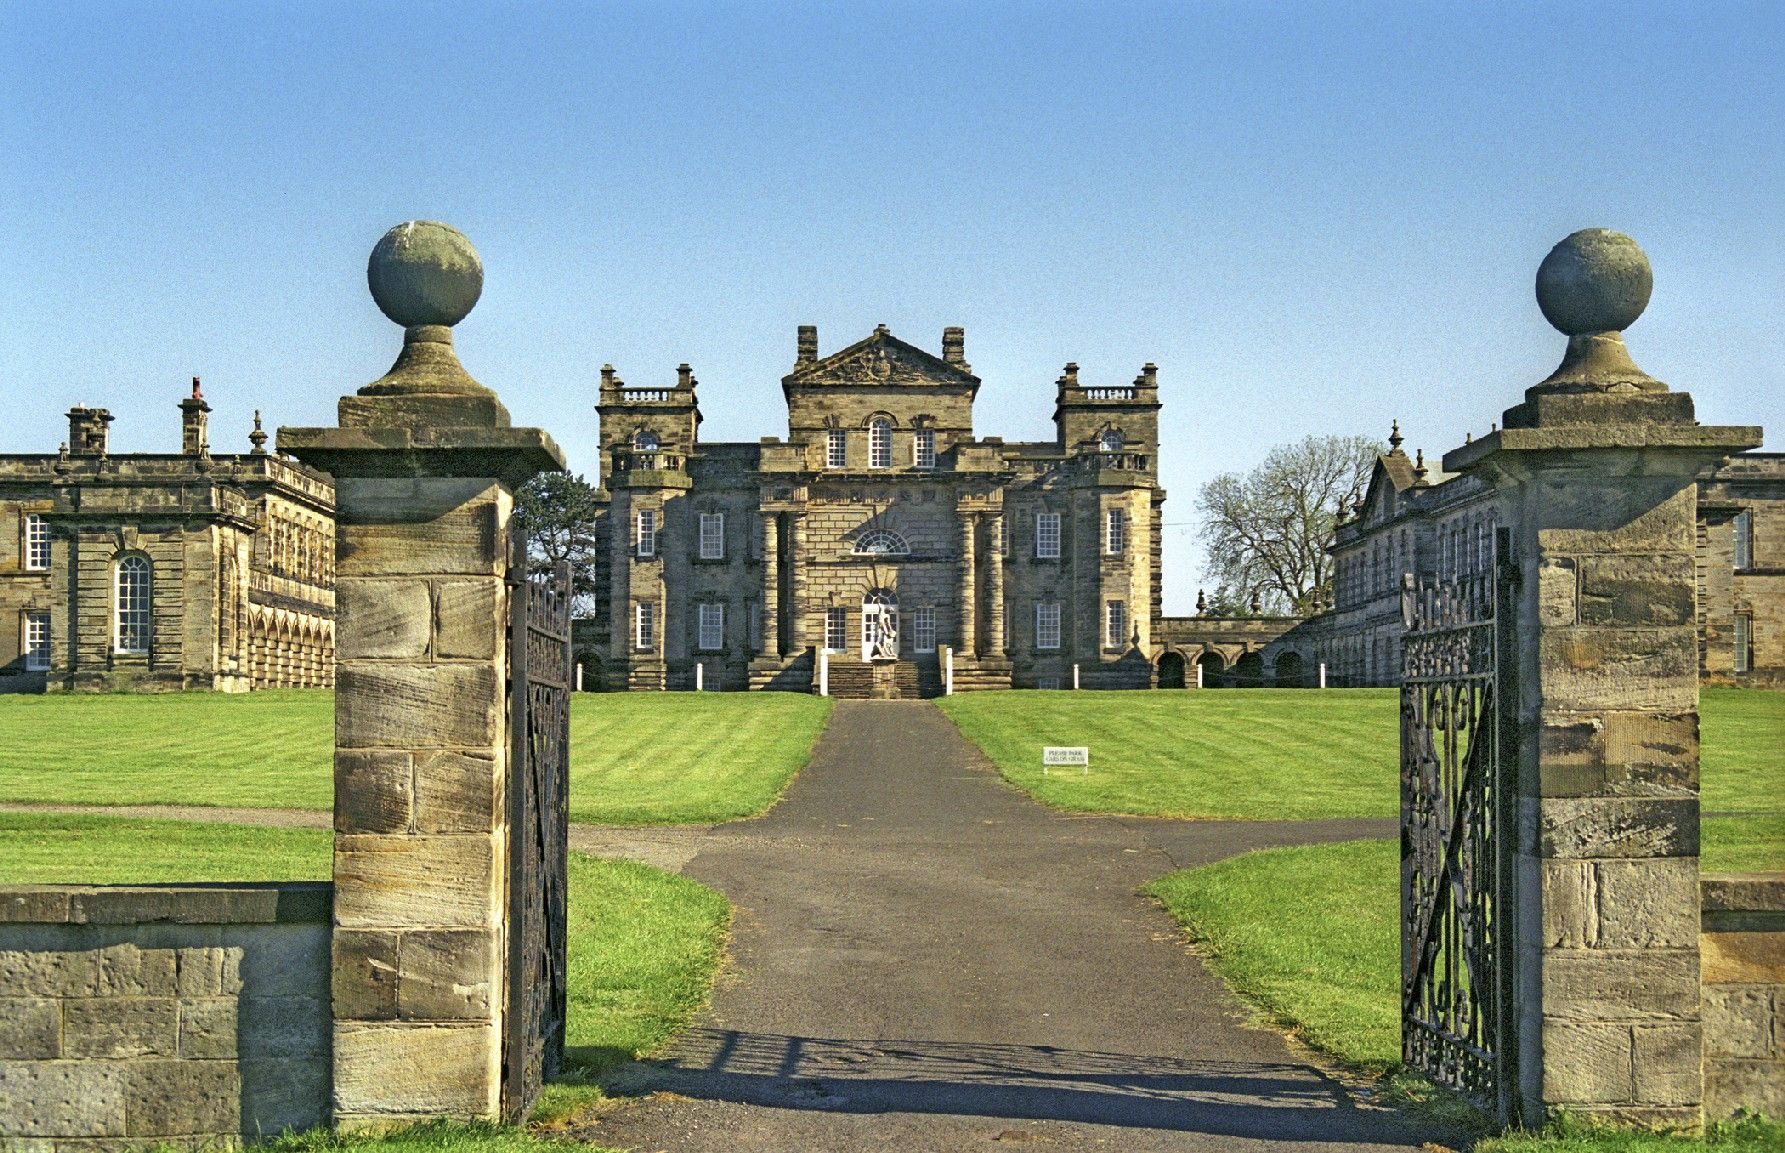 Seaton delaval hall the beautiful south northumberland